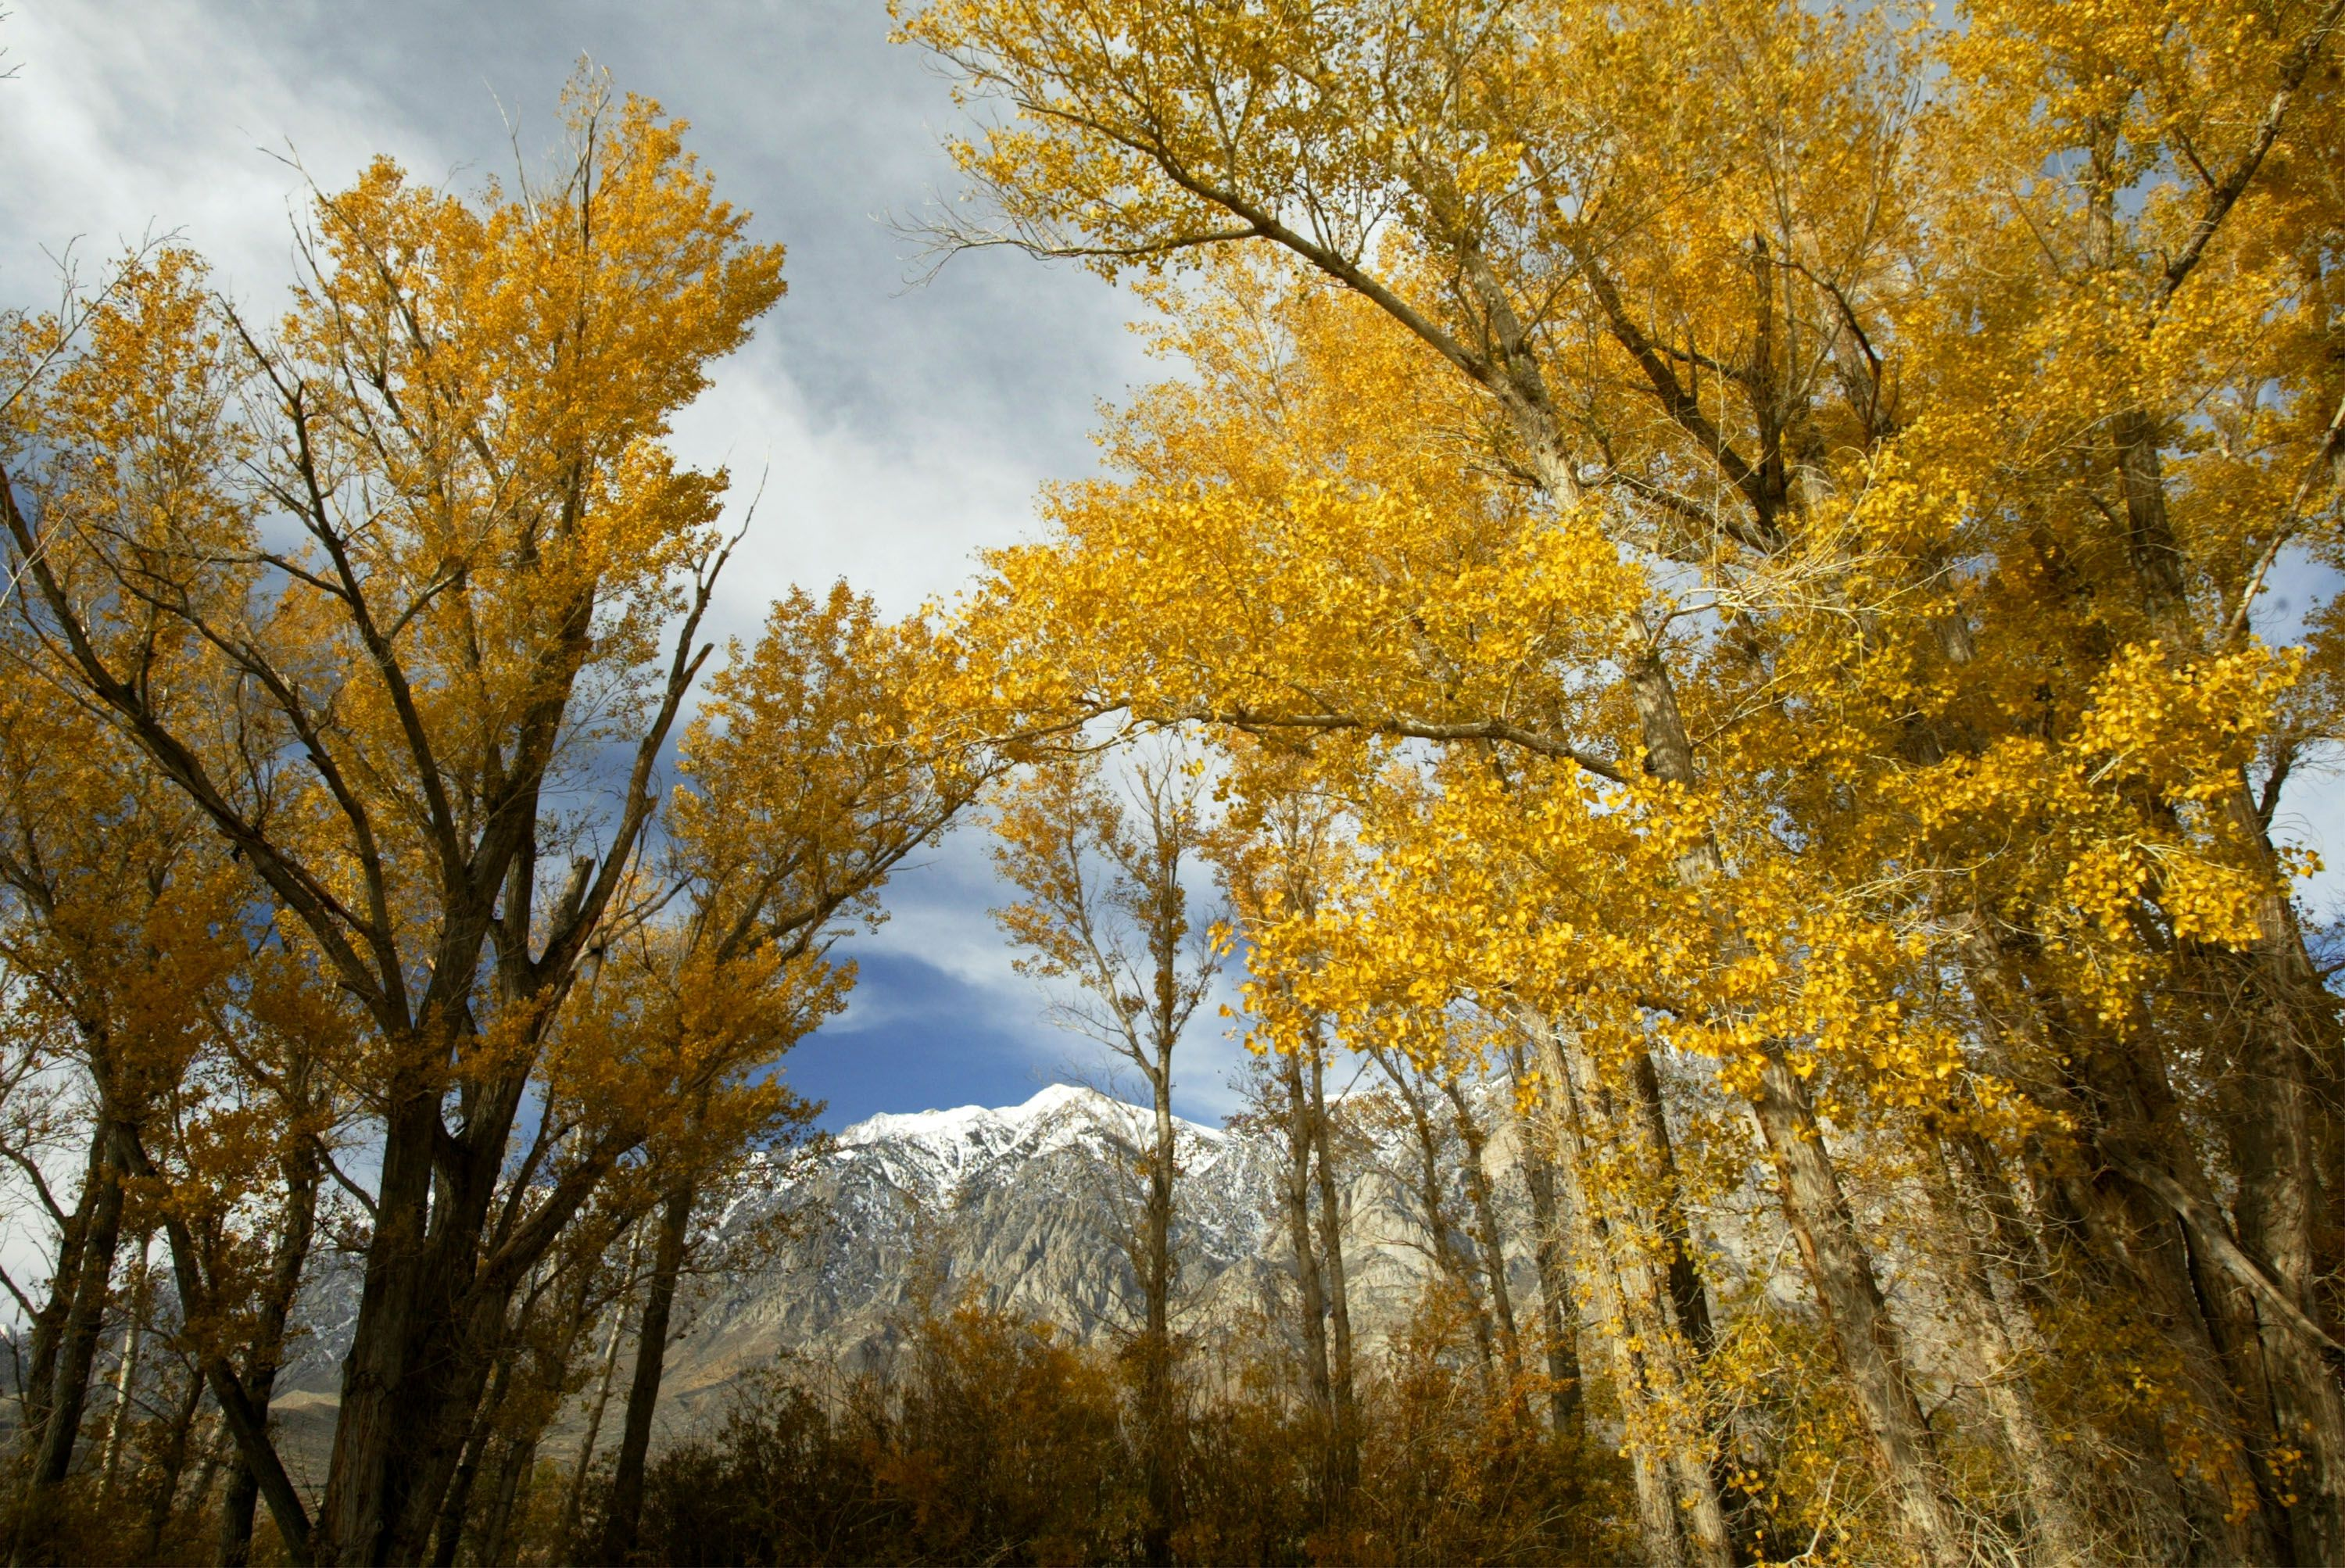 California Fall Getaways - Great Places to Go in Autumn